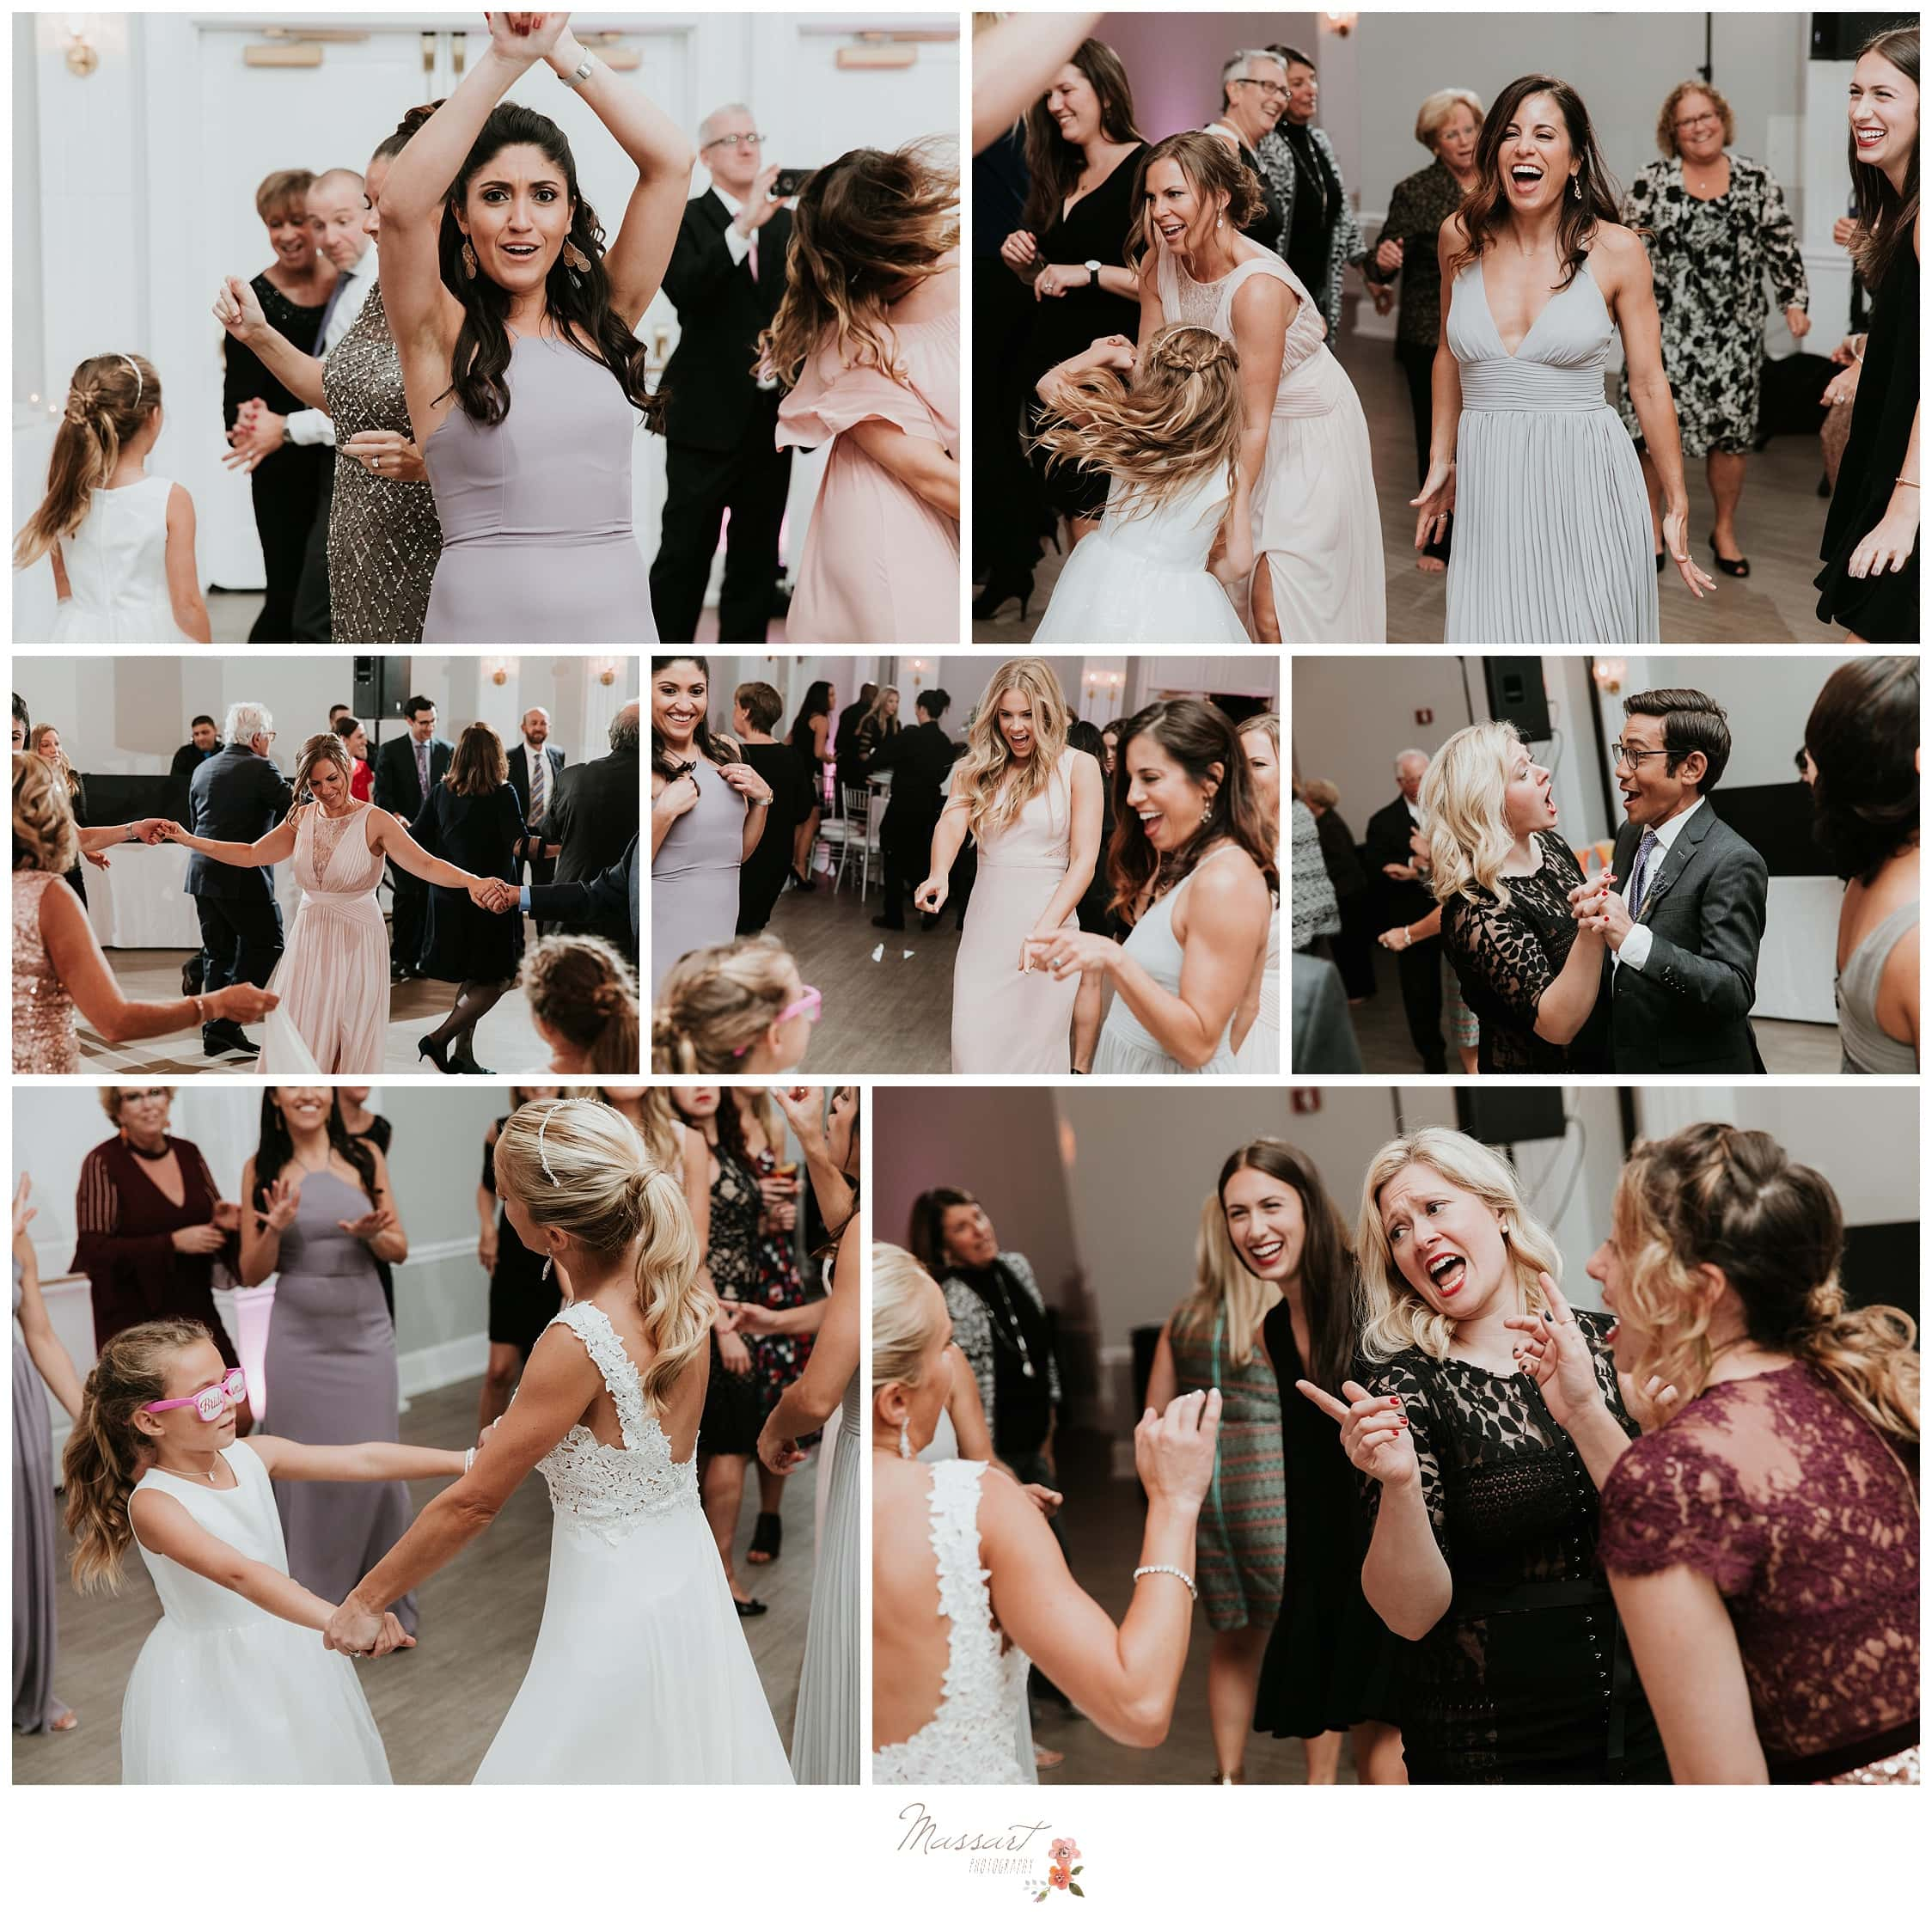 Portraits of the wedding guests dancing around the wedding reception photographed by Massart Photography RI